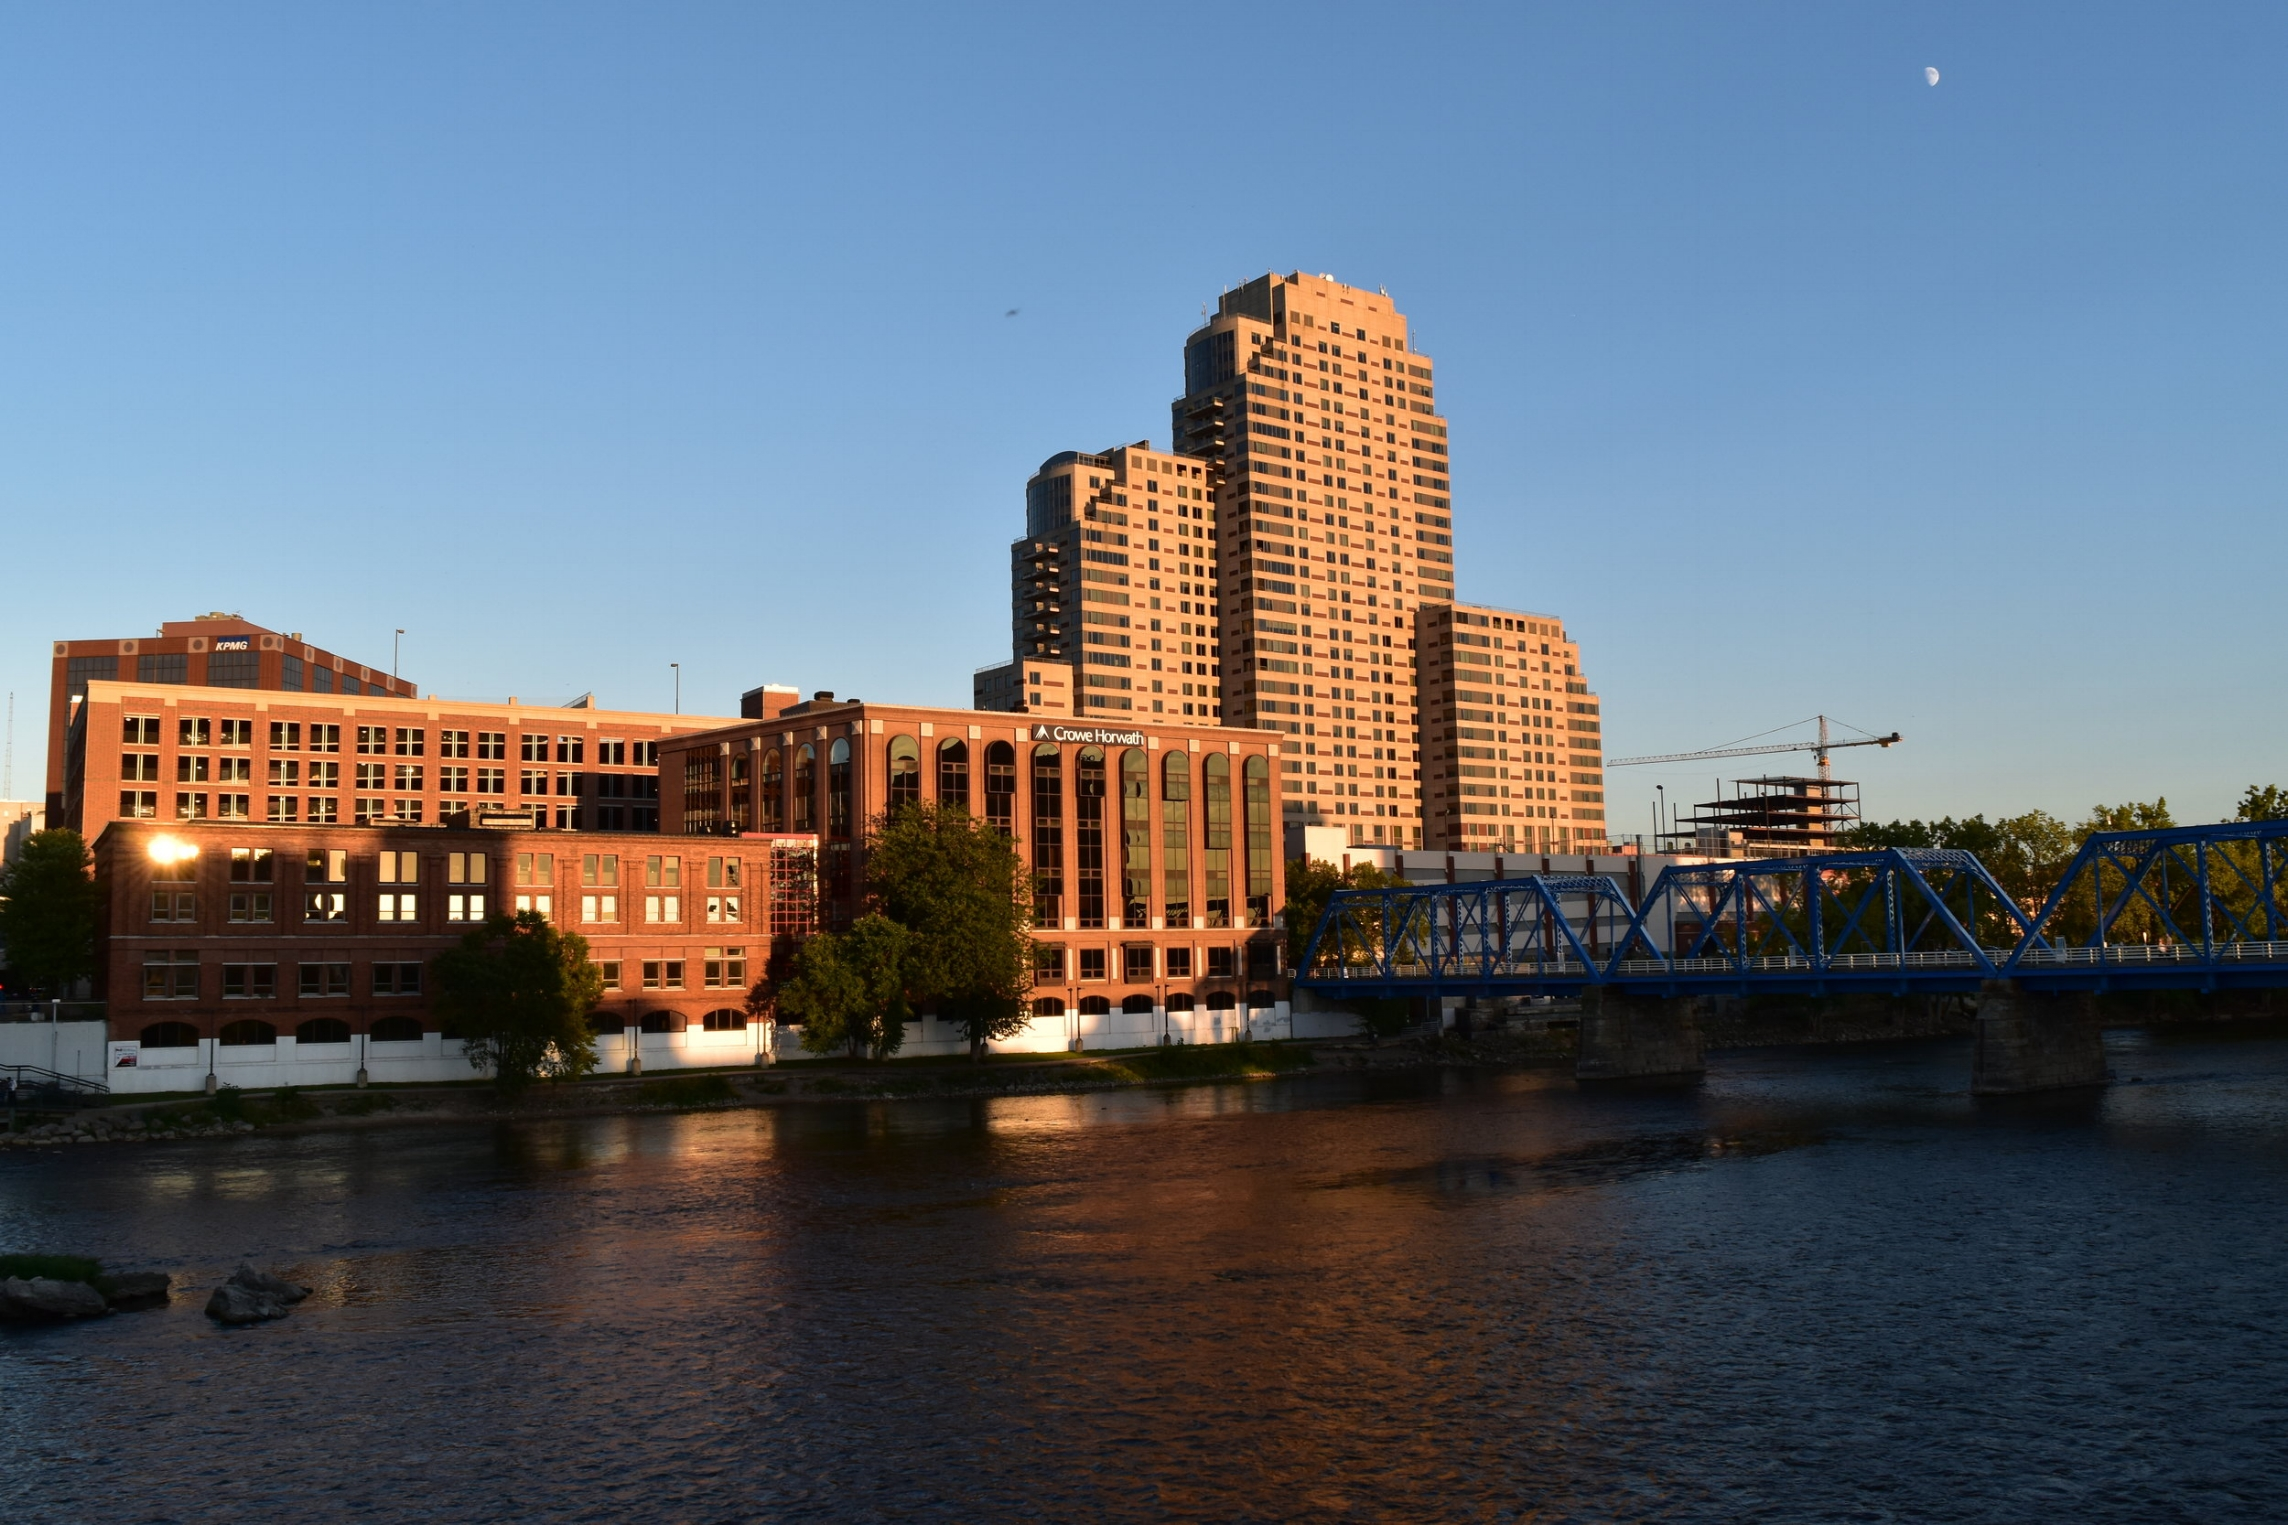 Dominion Systems has an office in Grand Rapids, MI showing blue bridge with big brick buildings in city.